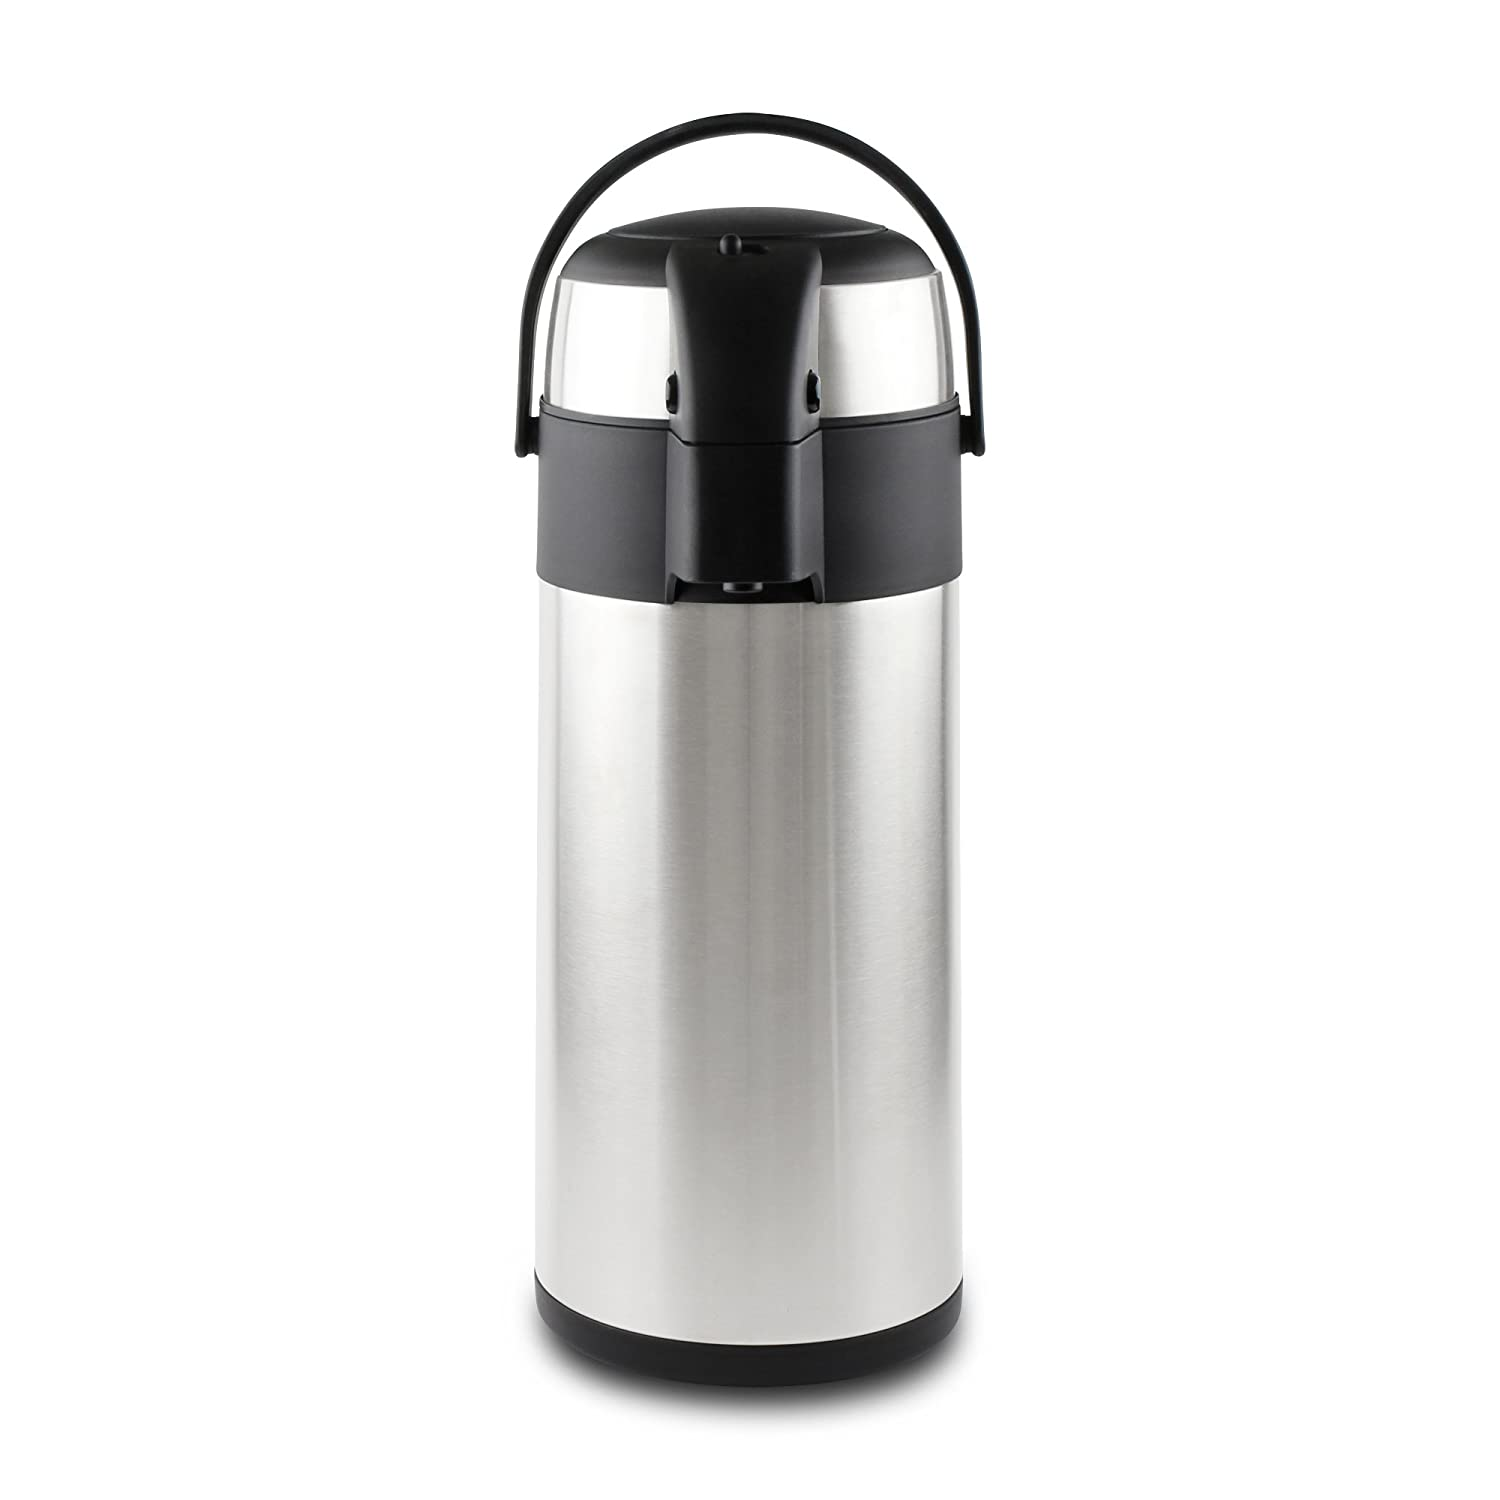 Pioneer Flasks Stainless Steel Air Pot Hot Cold Water Tea Coffee Dispenser Conference Event Flask, Satin Finish, 2.2 Litre Grunwerg SS22R